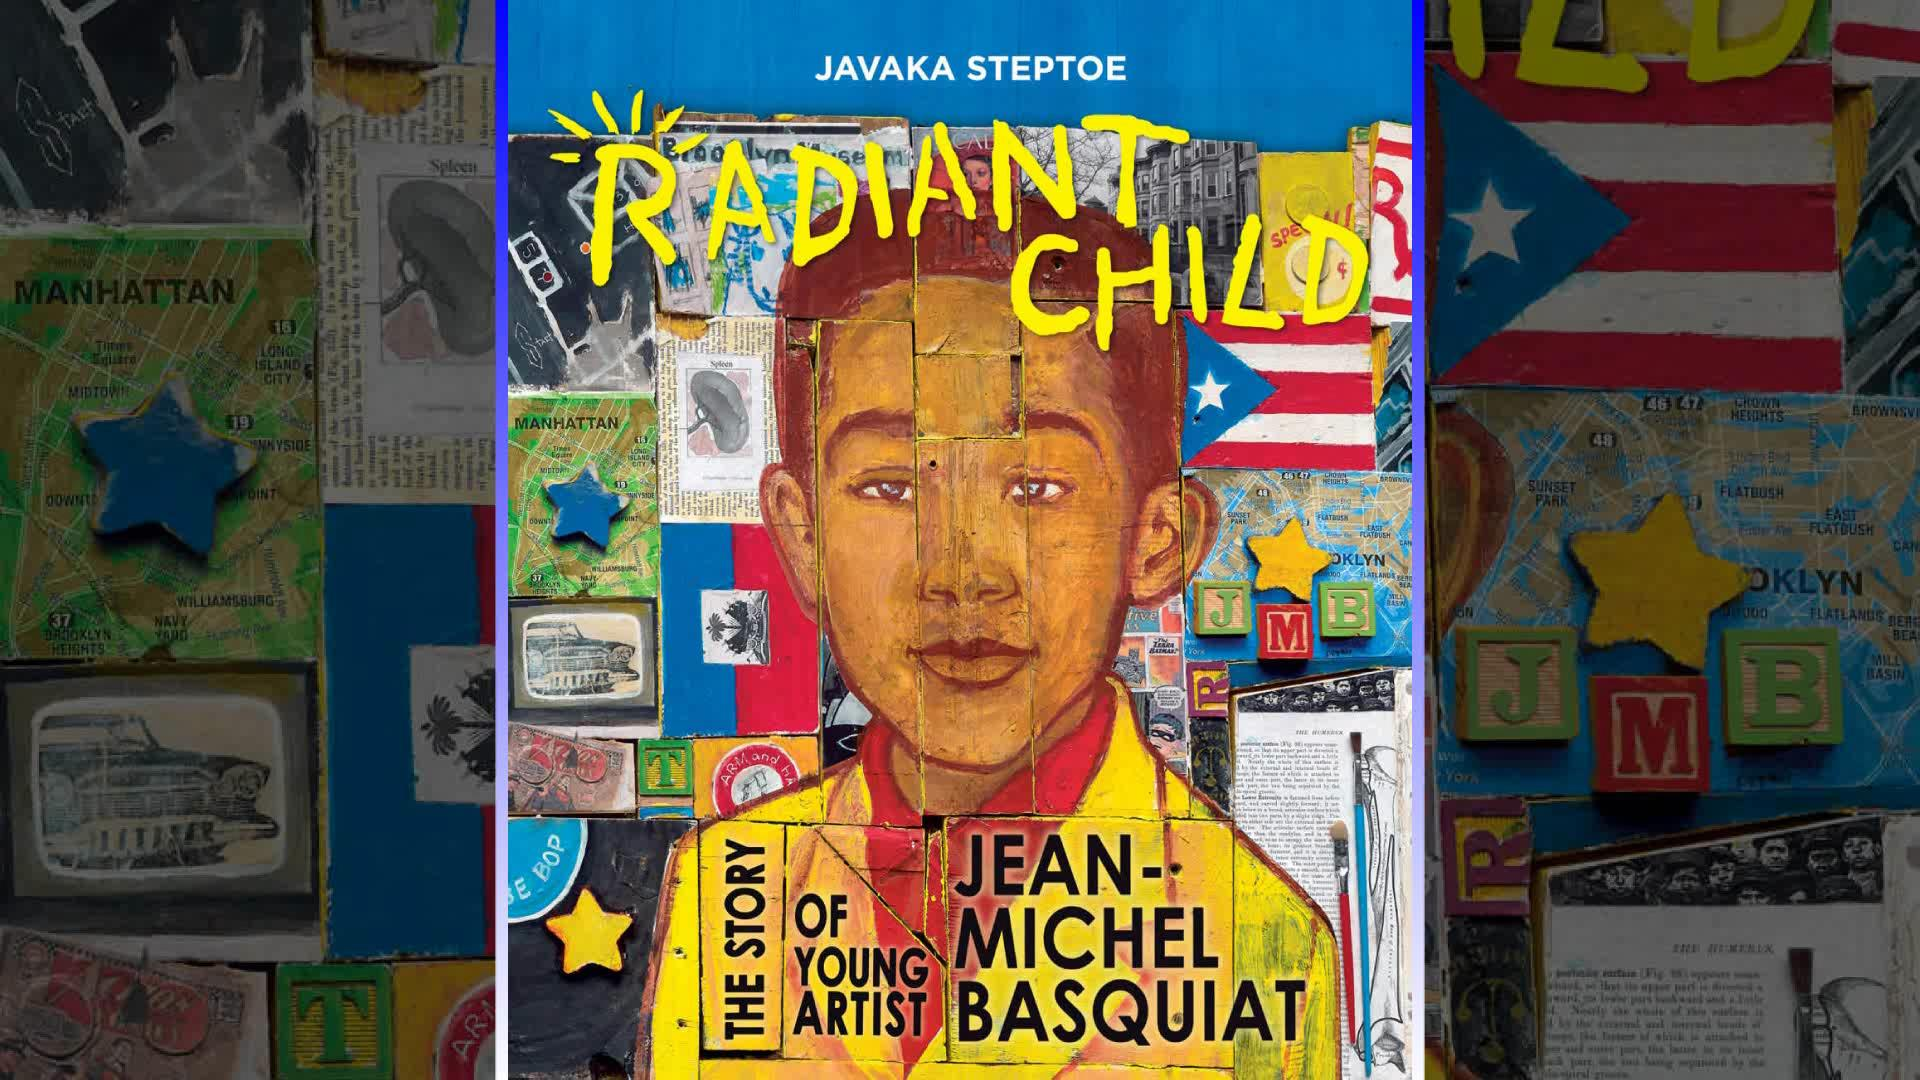 Radiant Child: The Story of Young Artist Jean-Michel Basquiat | Audio Children's Book